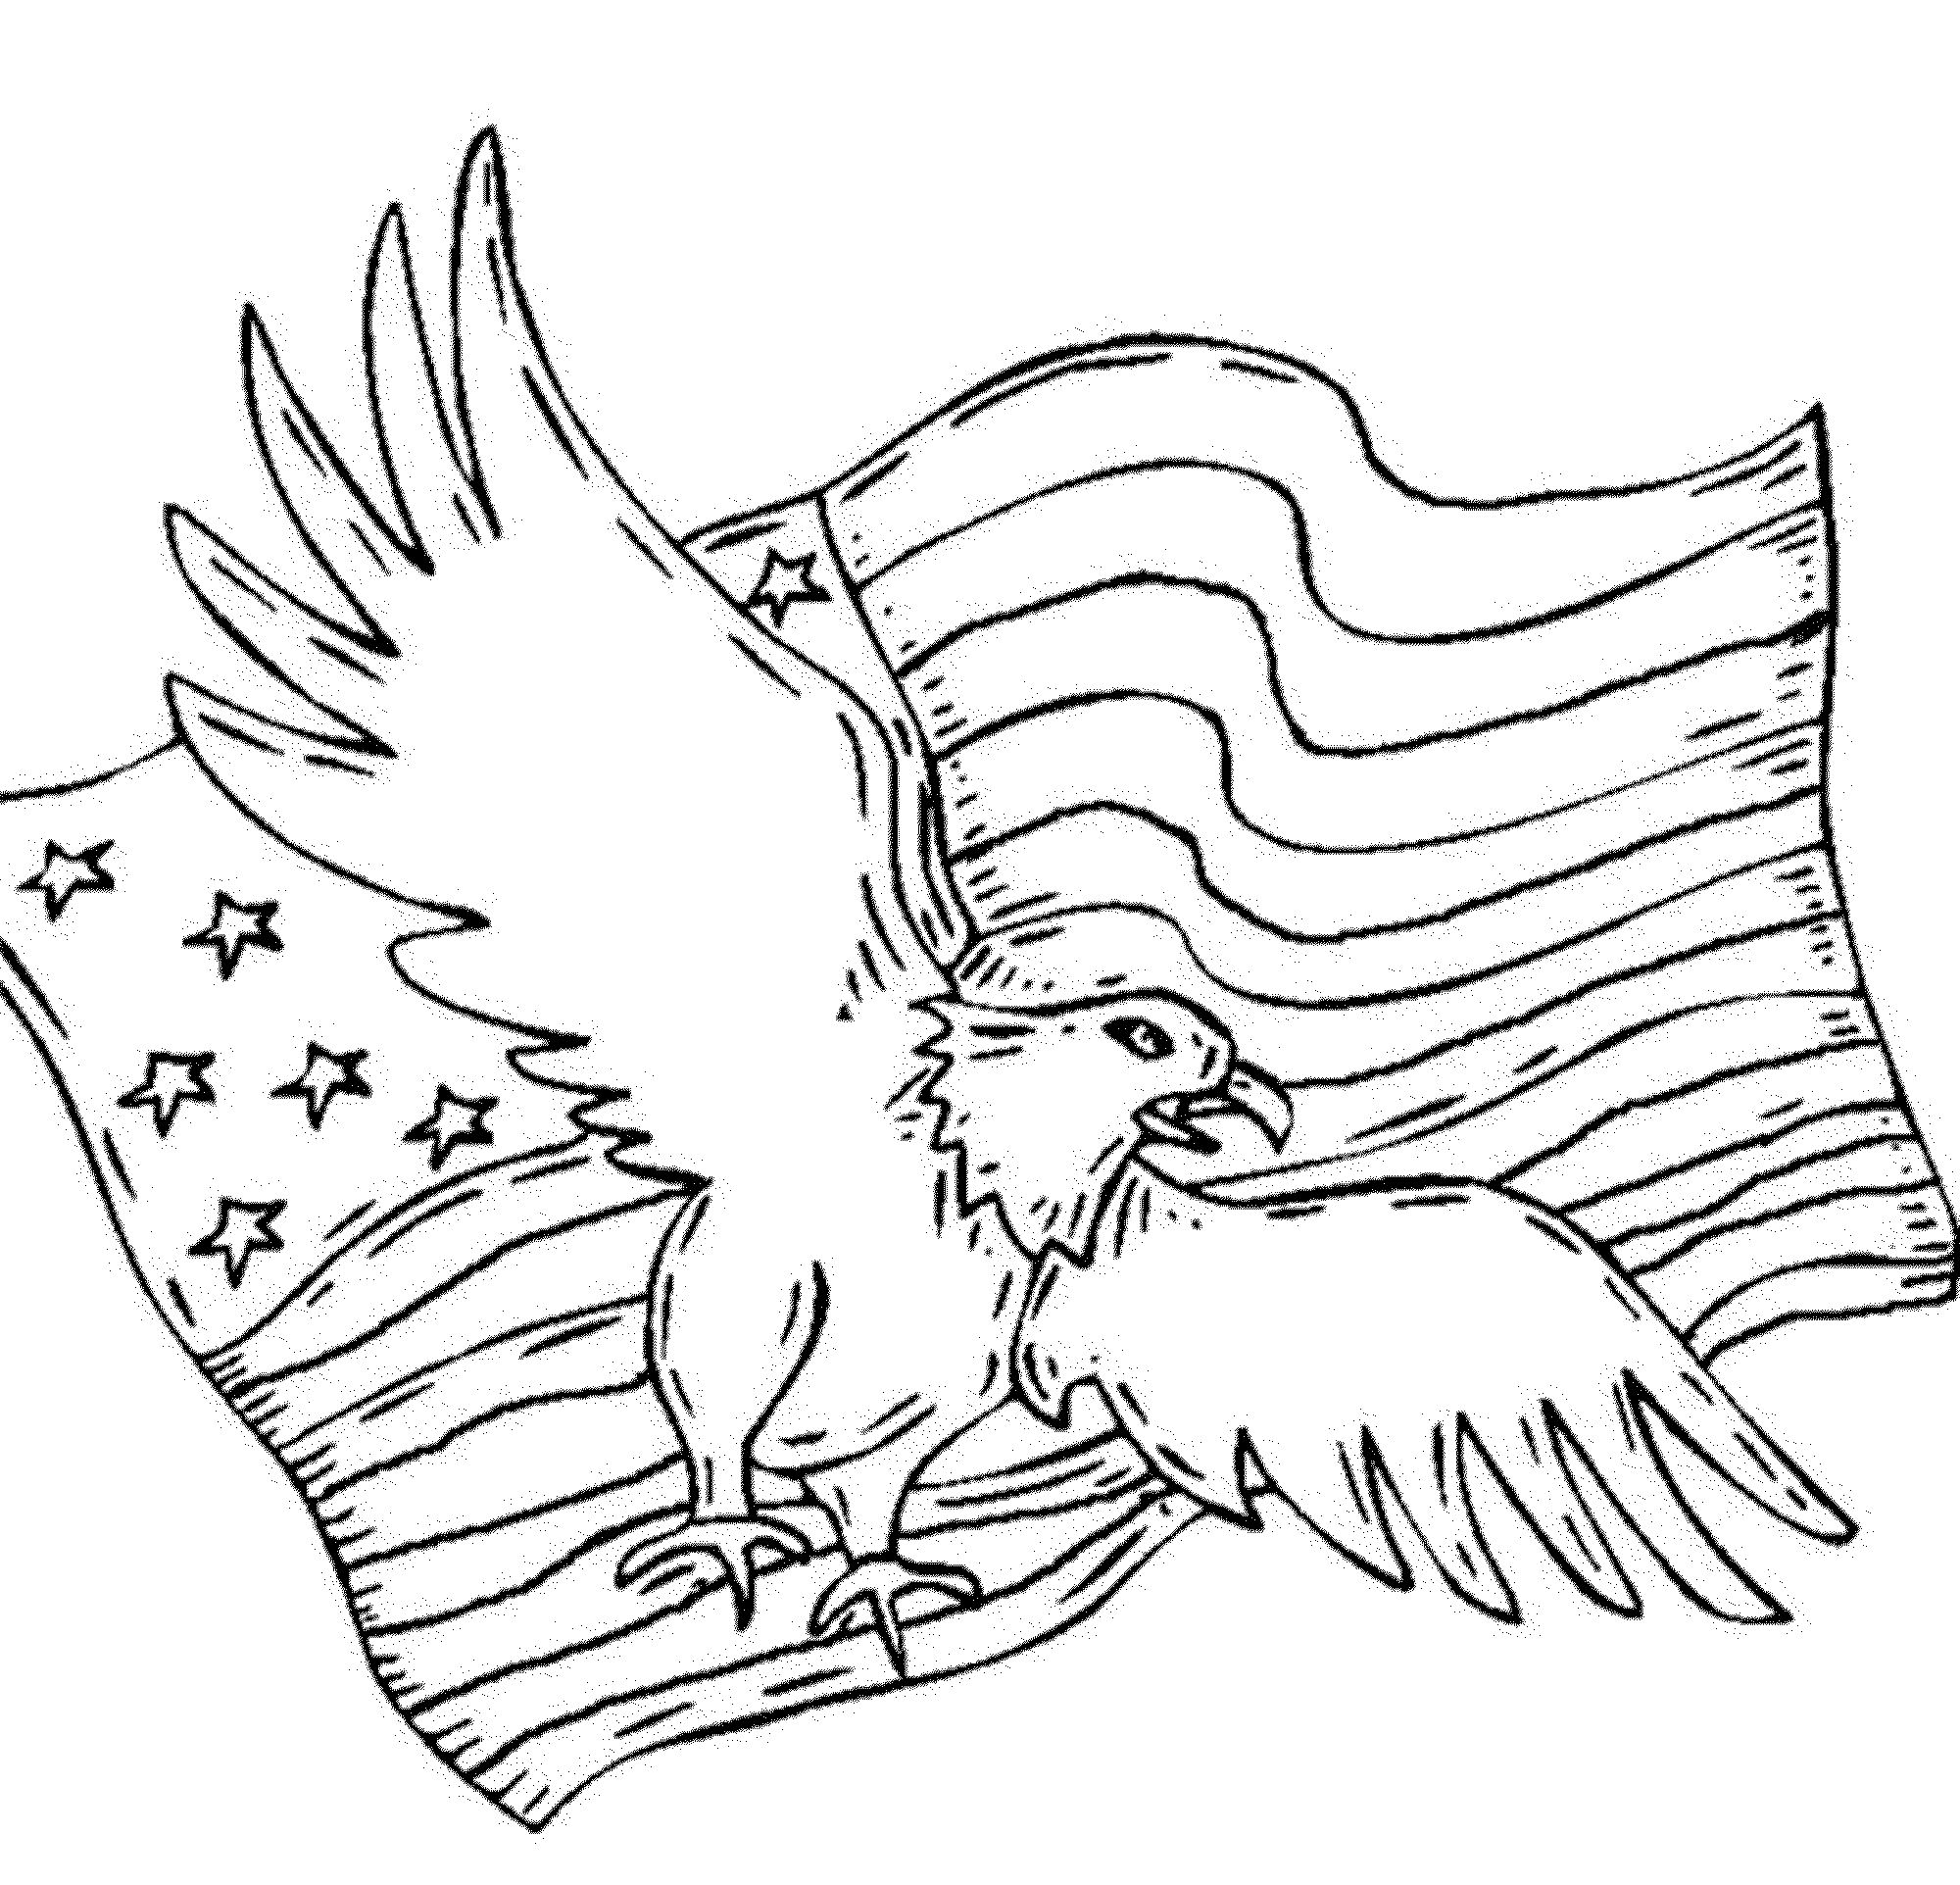 small american flag coloring page coloring page american flag free printable coloring small page american flag coloring